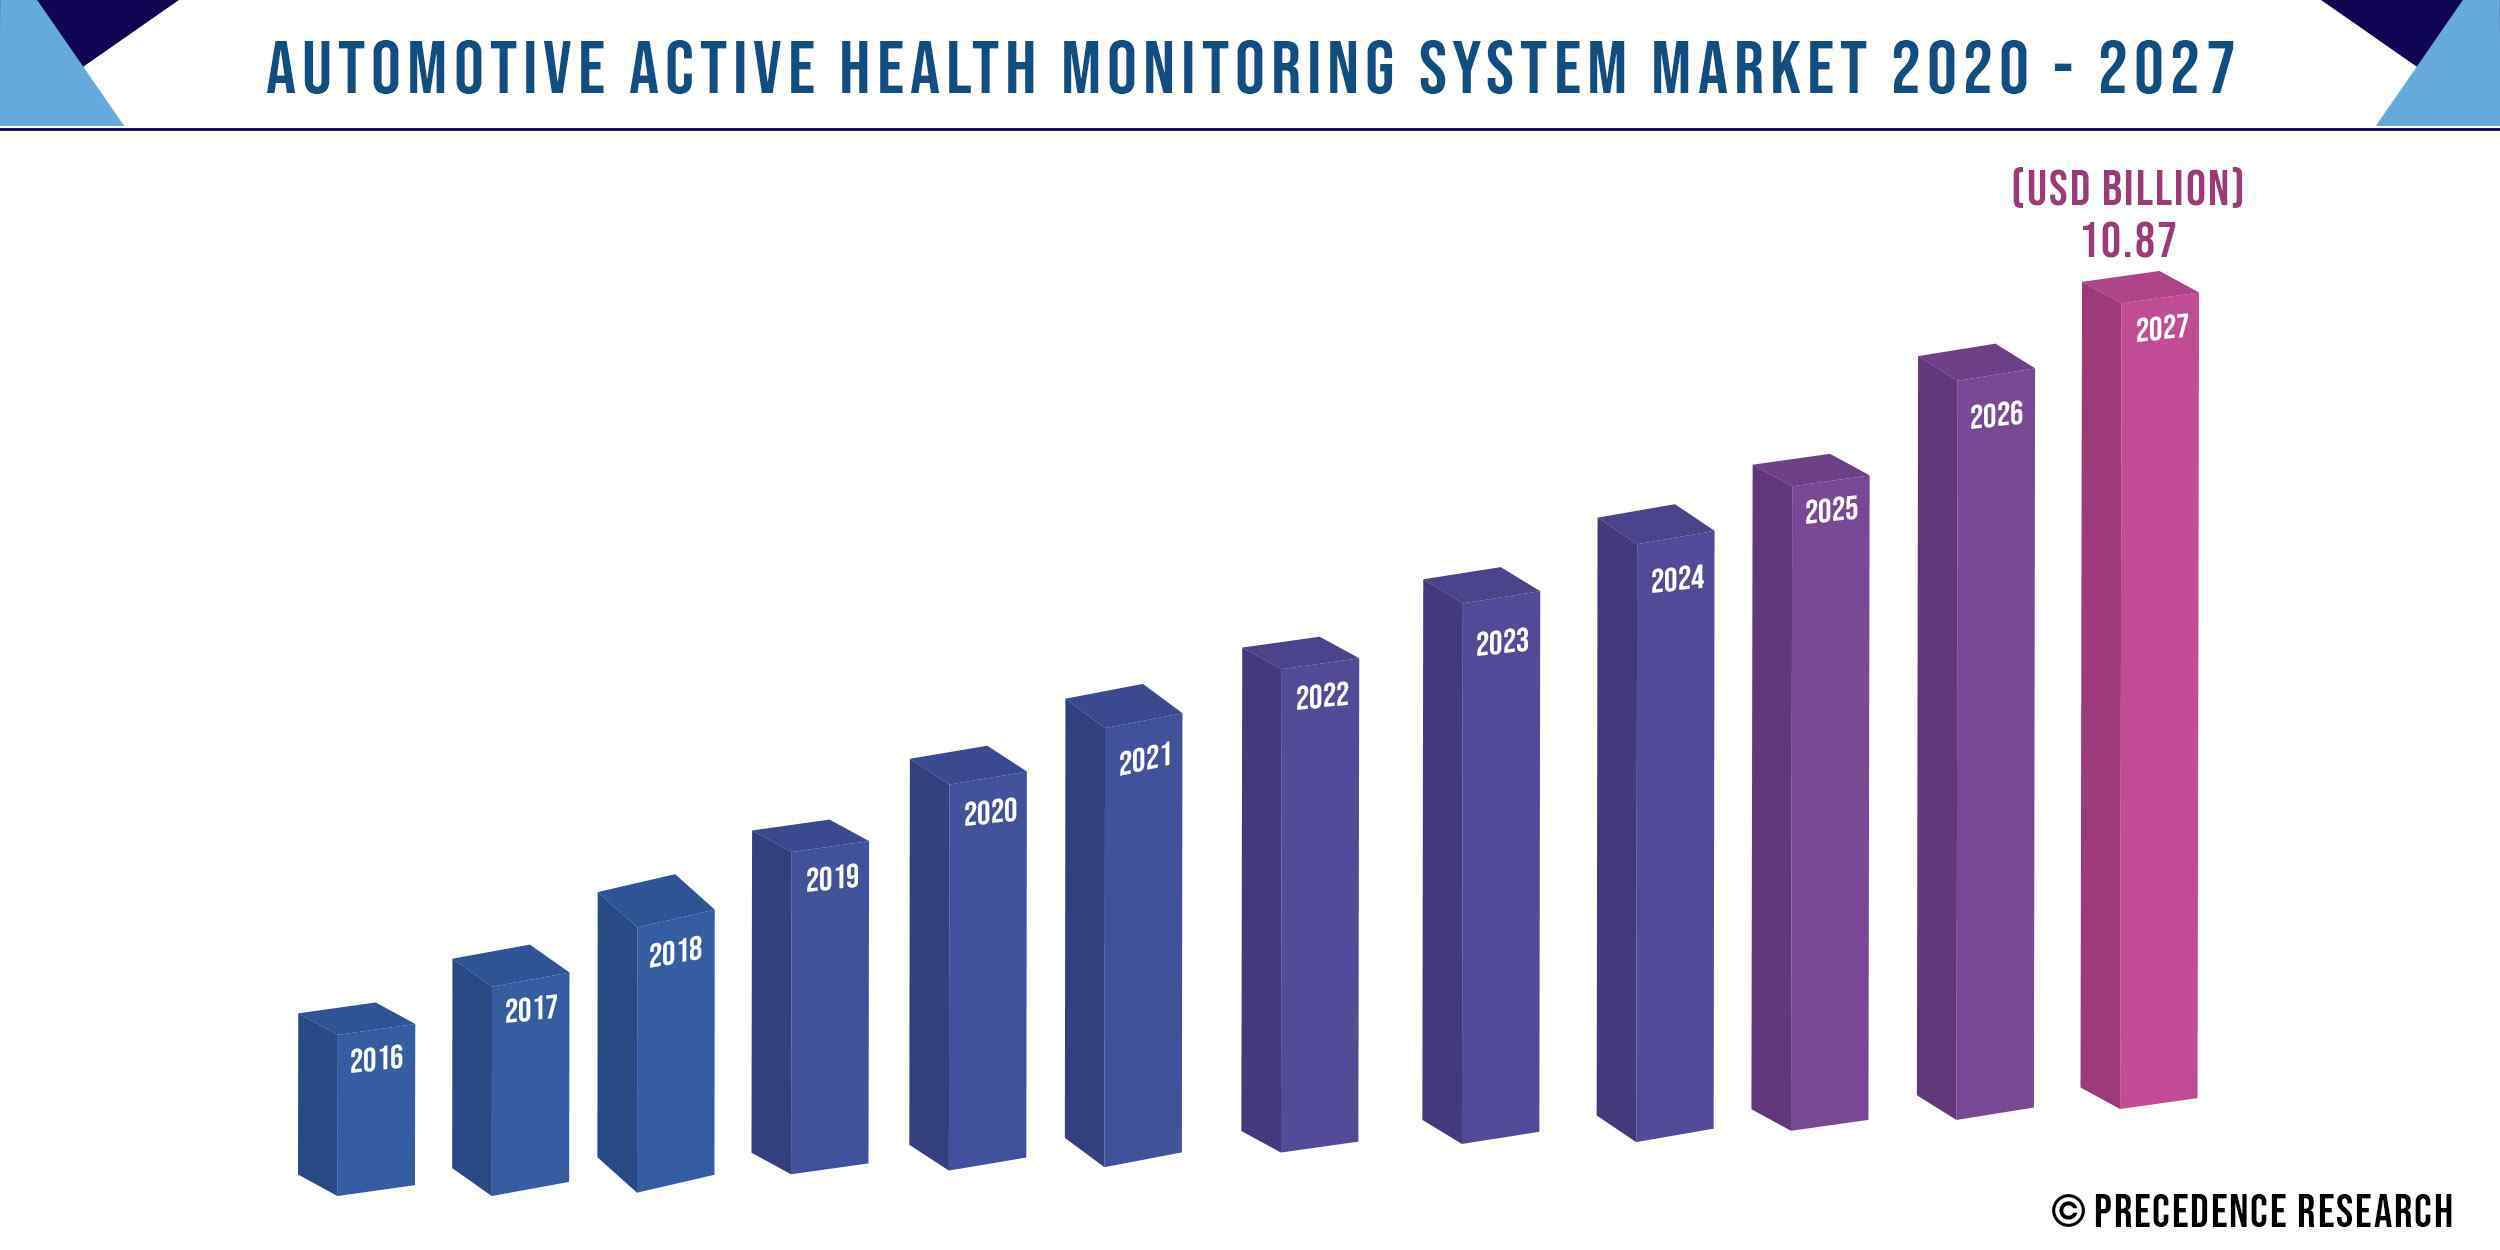 Automotive Active Health Monitoring System Market Size 2016-2027